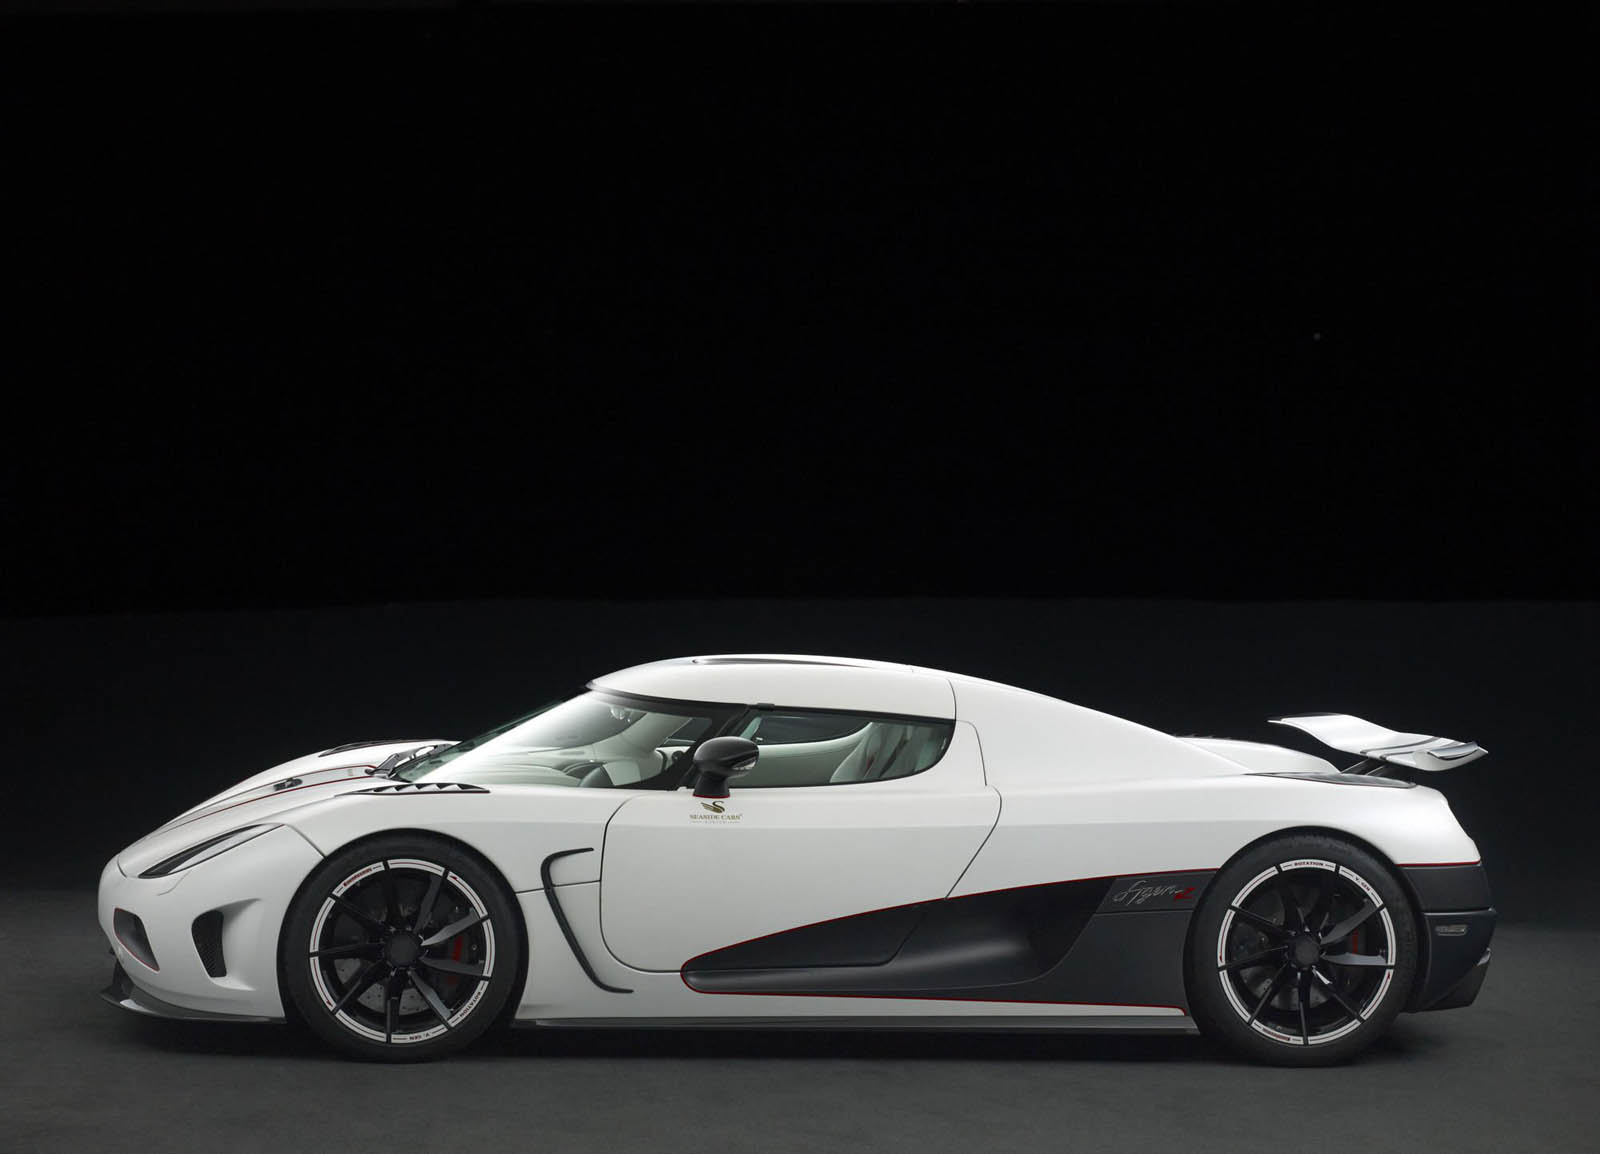 Can't Wait 4 Years? Buy This Koenigsegg Agera R From ...